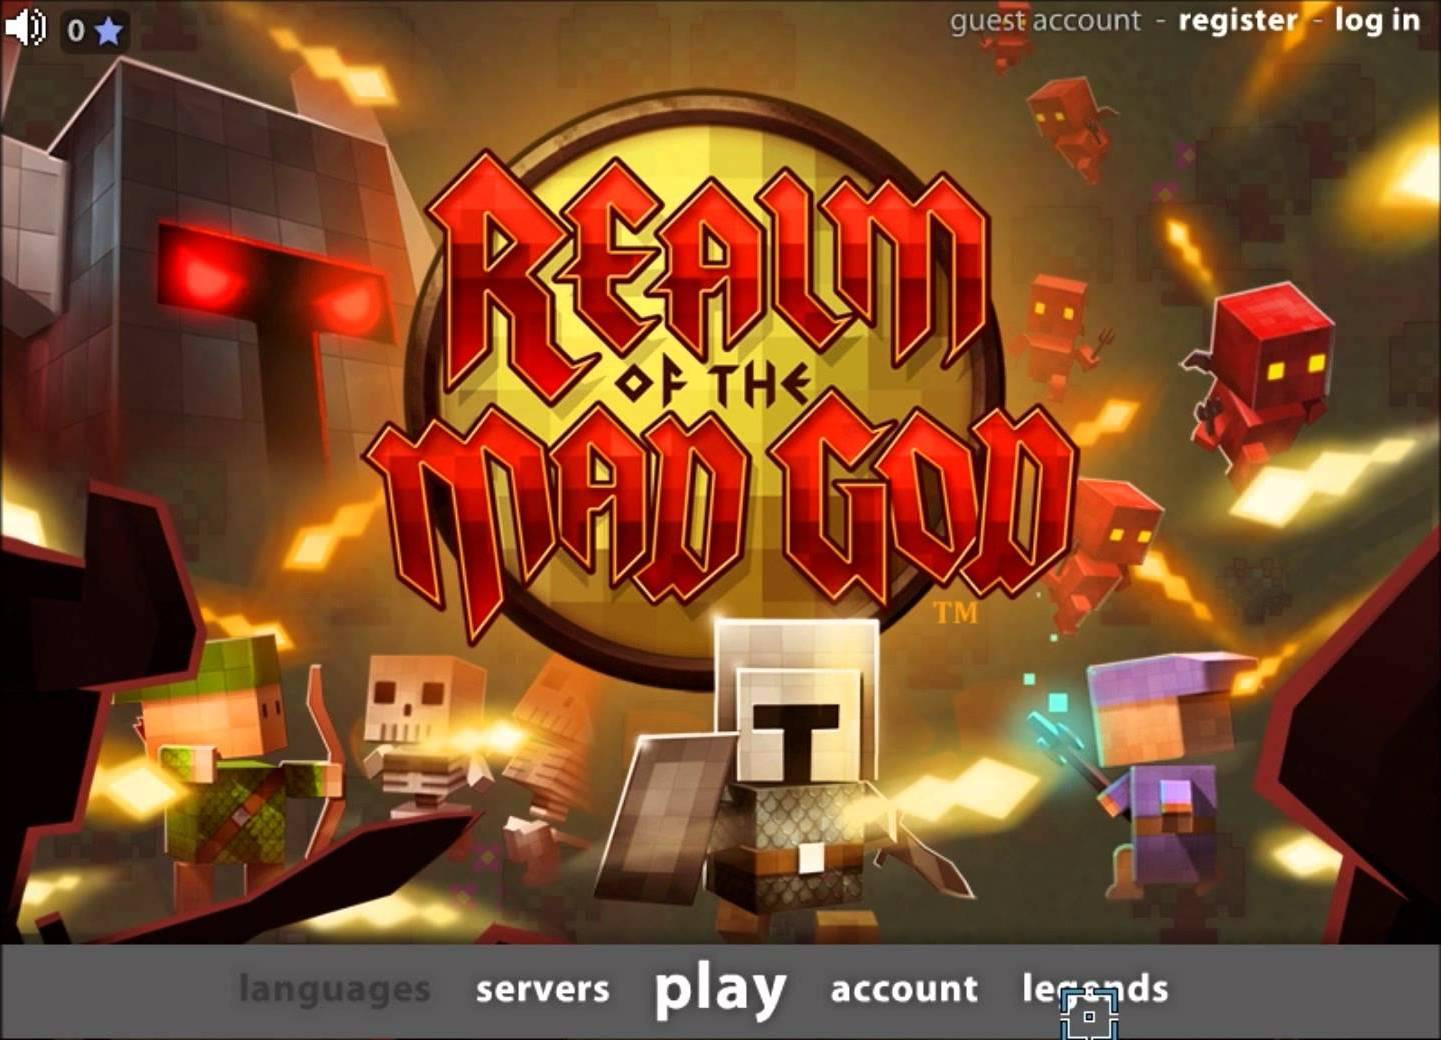 """In """"Realm of the Mad God,"""" players face bullet hell environments that require precise dodging skills or enough defense to absorb damage without dying. If the danger is just too much, players can escape to safety using a technique known as """"Nexusing."""""""